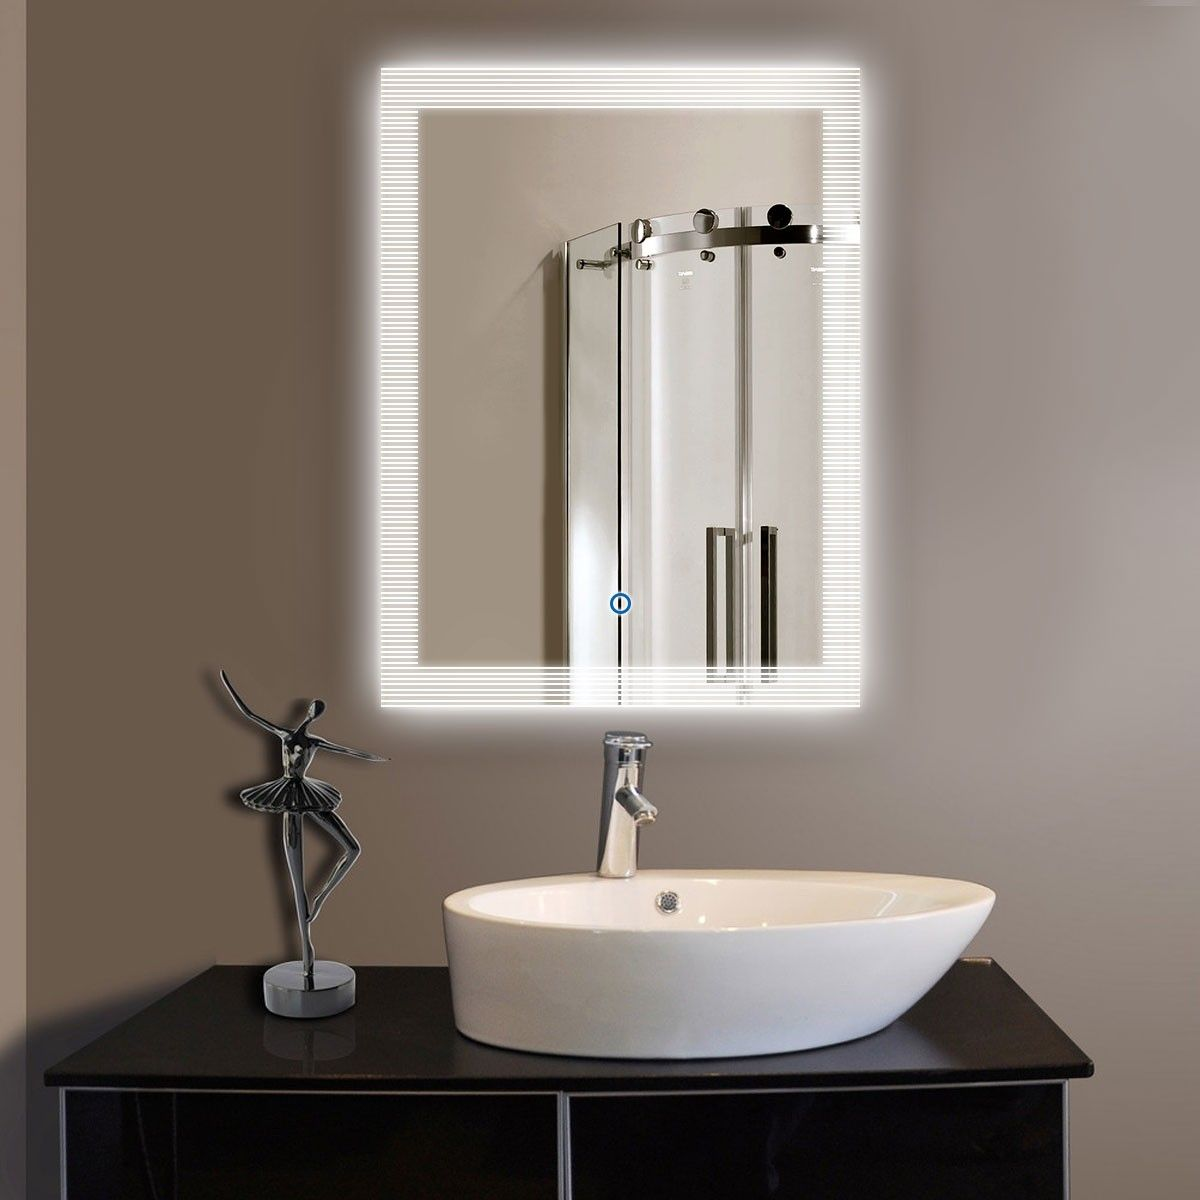 Best Of Small Bathroom Wall Mirror